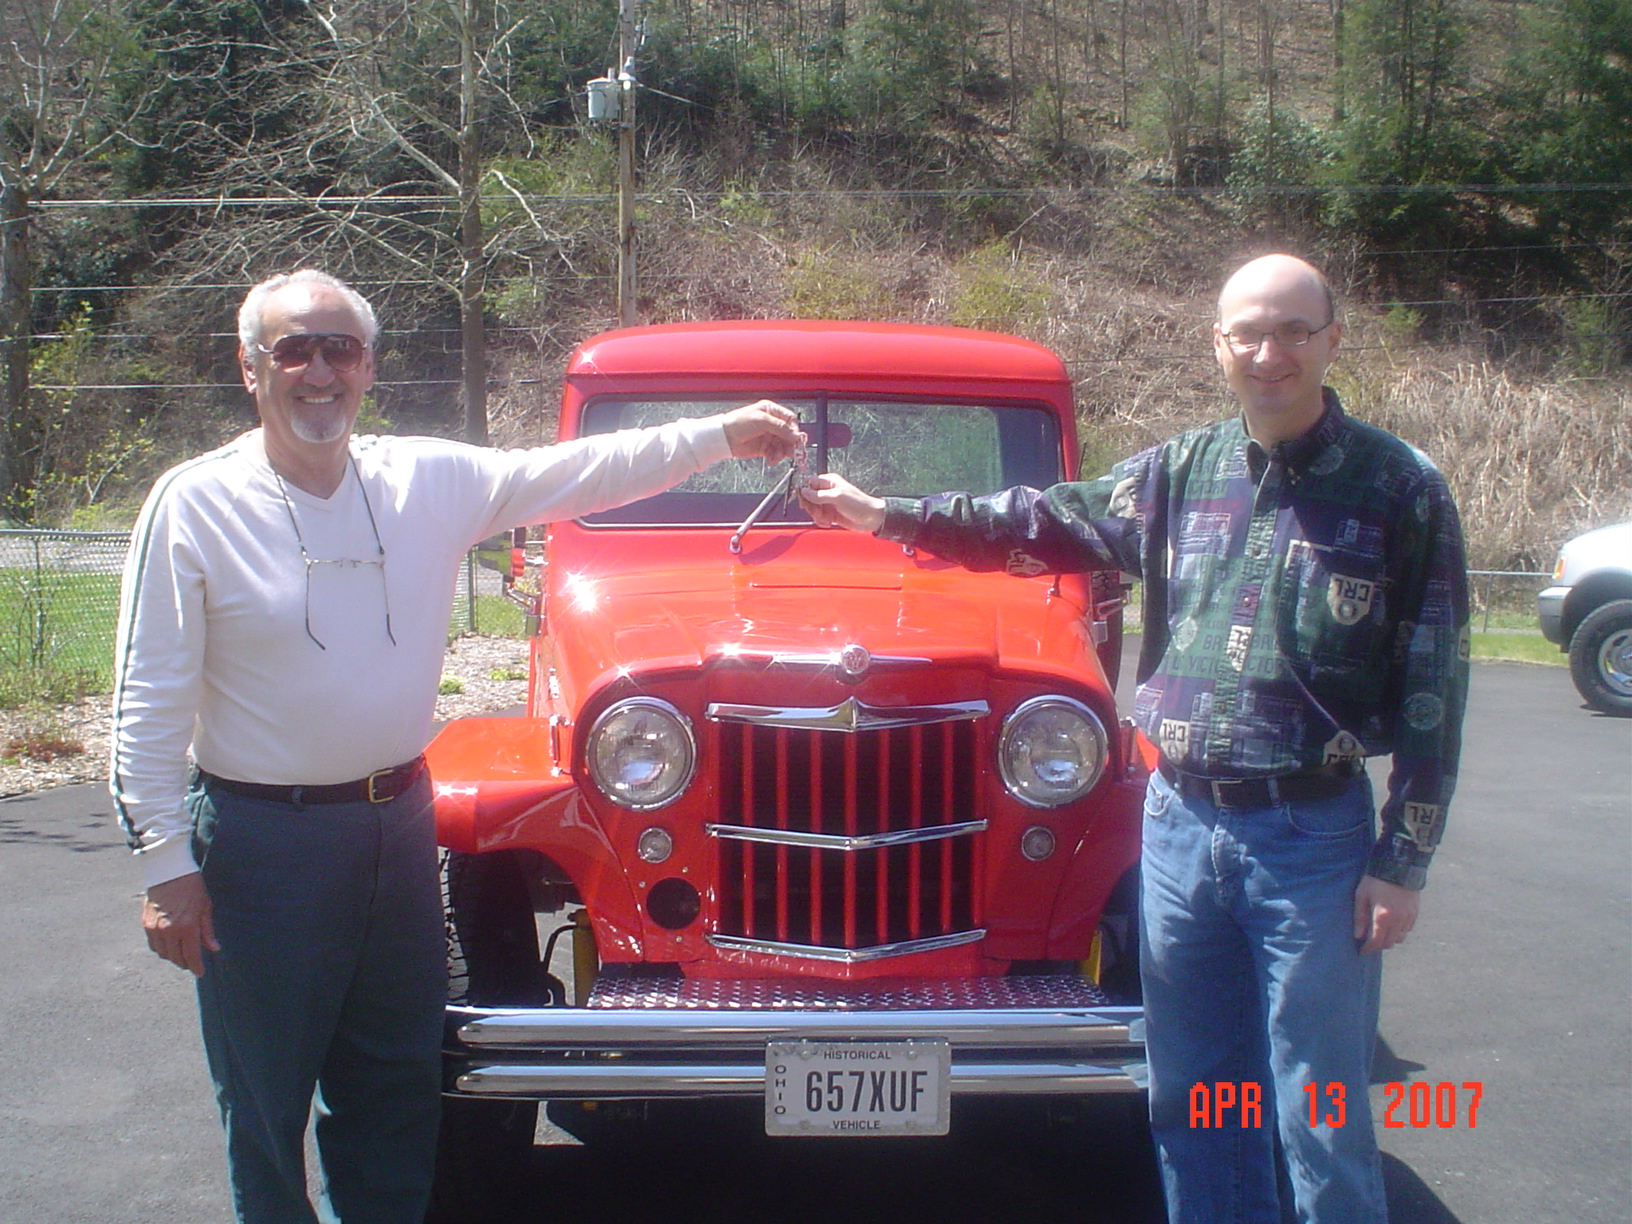 Jamies 1960 Willys Pickup Truck The Build Jeep For Sale Used Pop Coleman Hands Over Keys